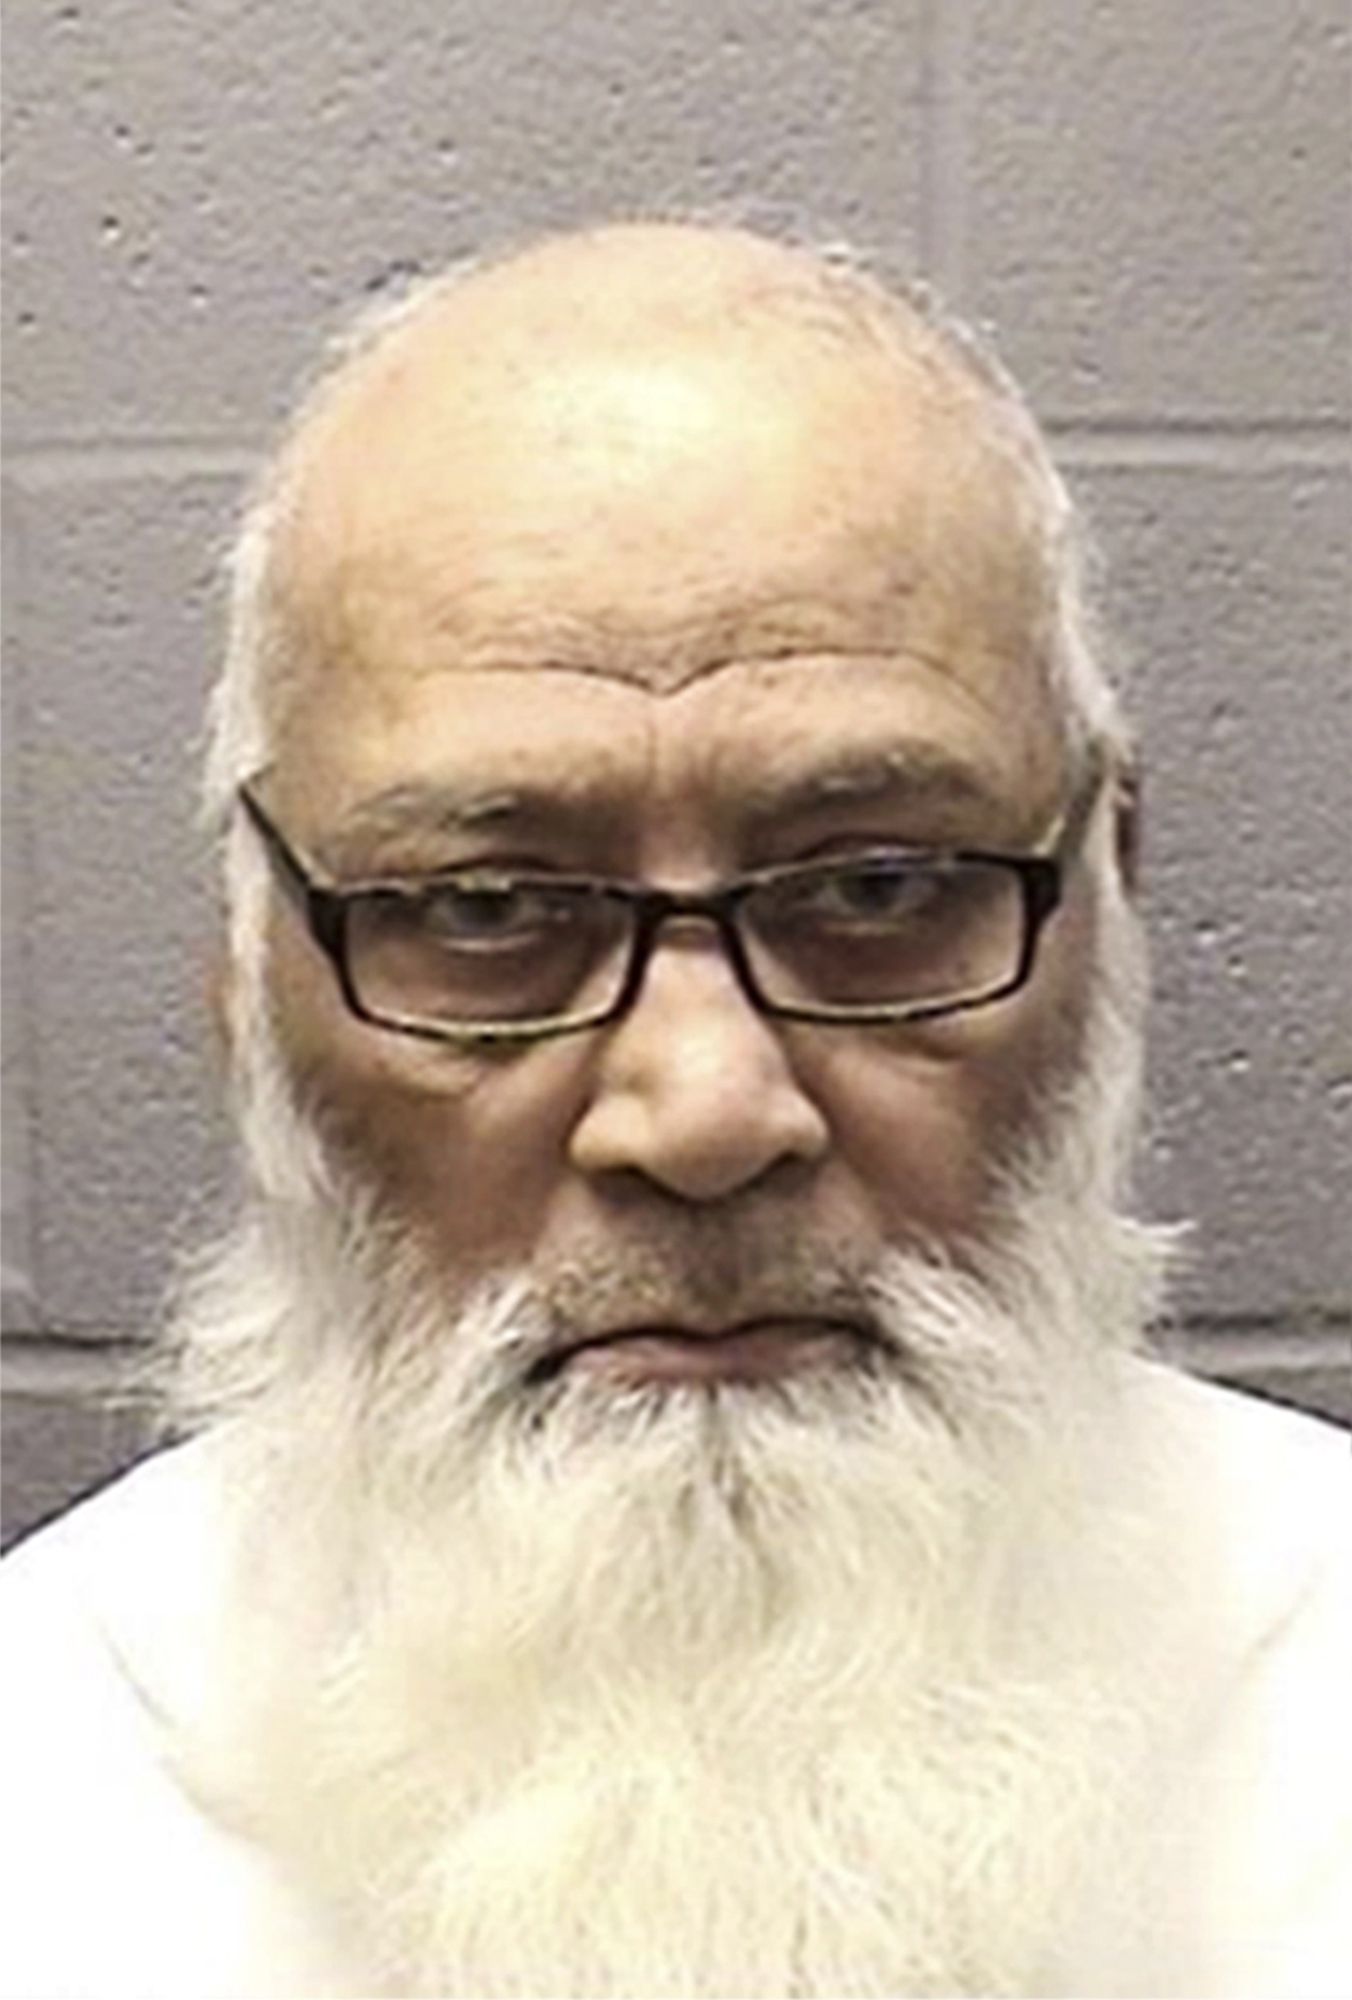 Mohammed Abdullah Saleem, a religious scholar and former Principal of the Islamic Institute of Education in Elgin, is charged with allegedly assaulting a female employee.